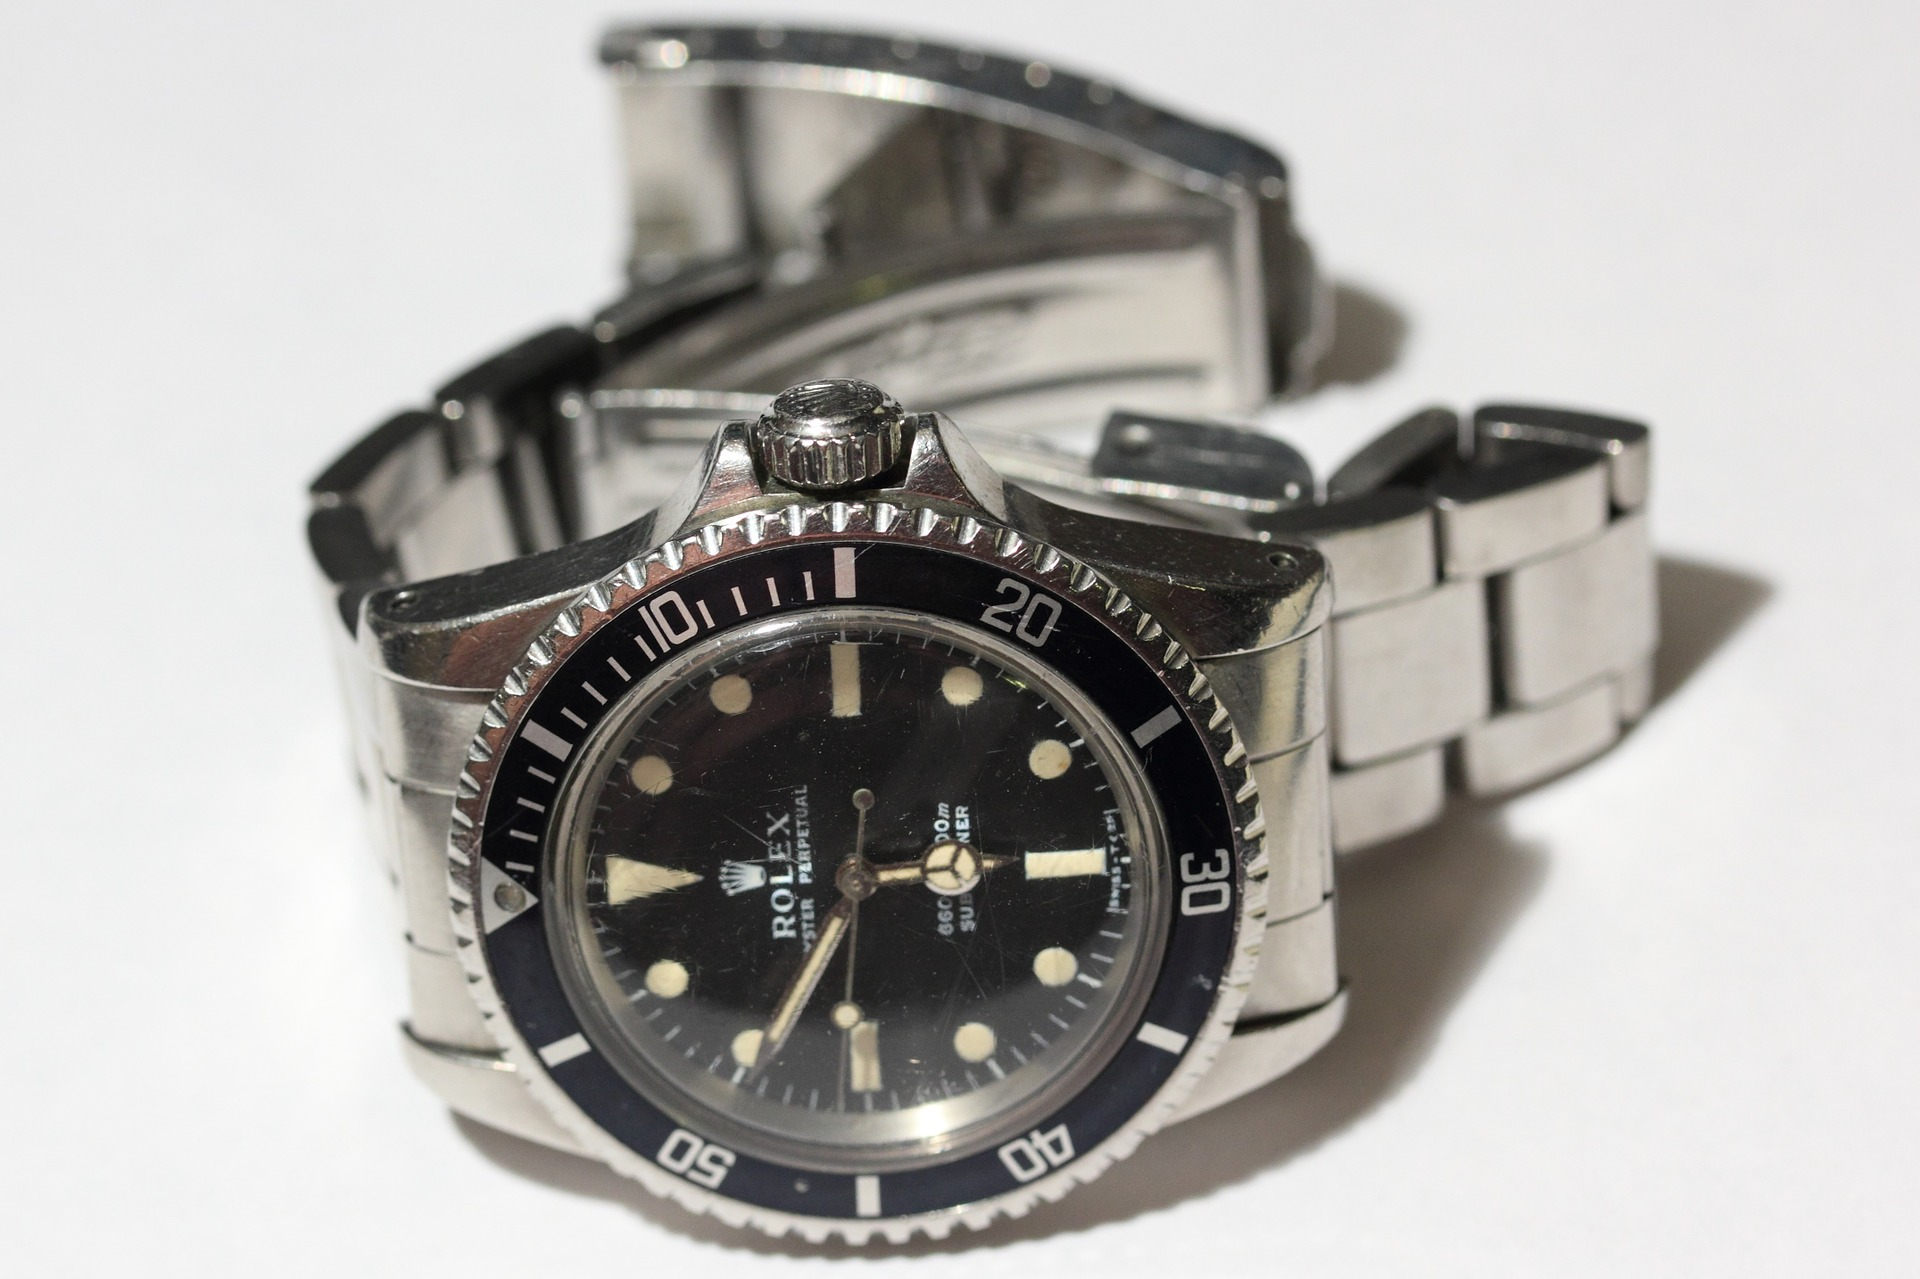 Sell your old, unwanted luxury watches